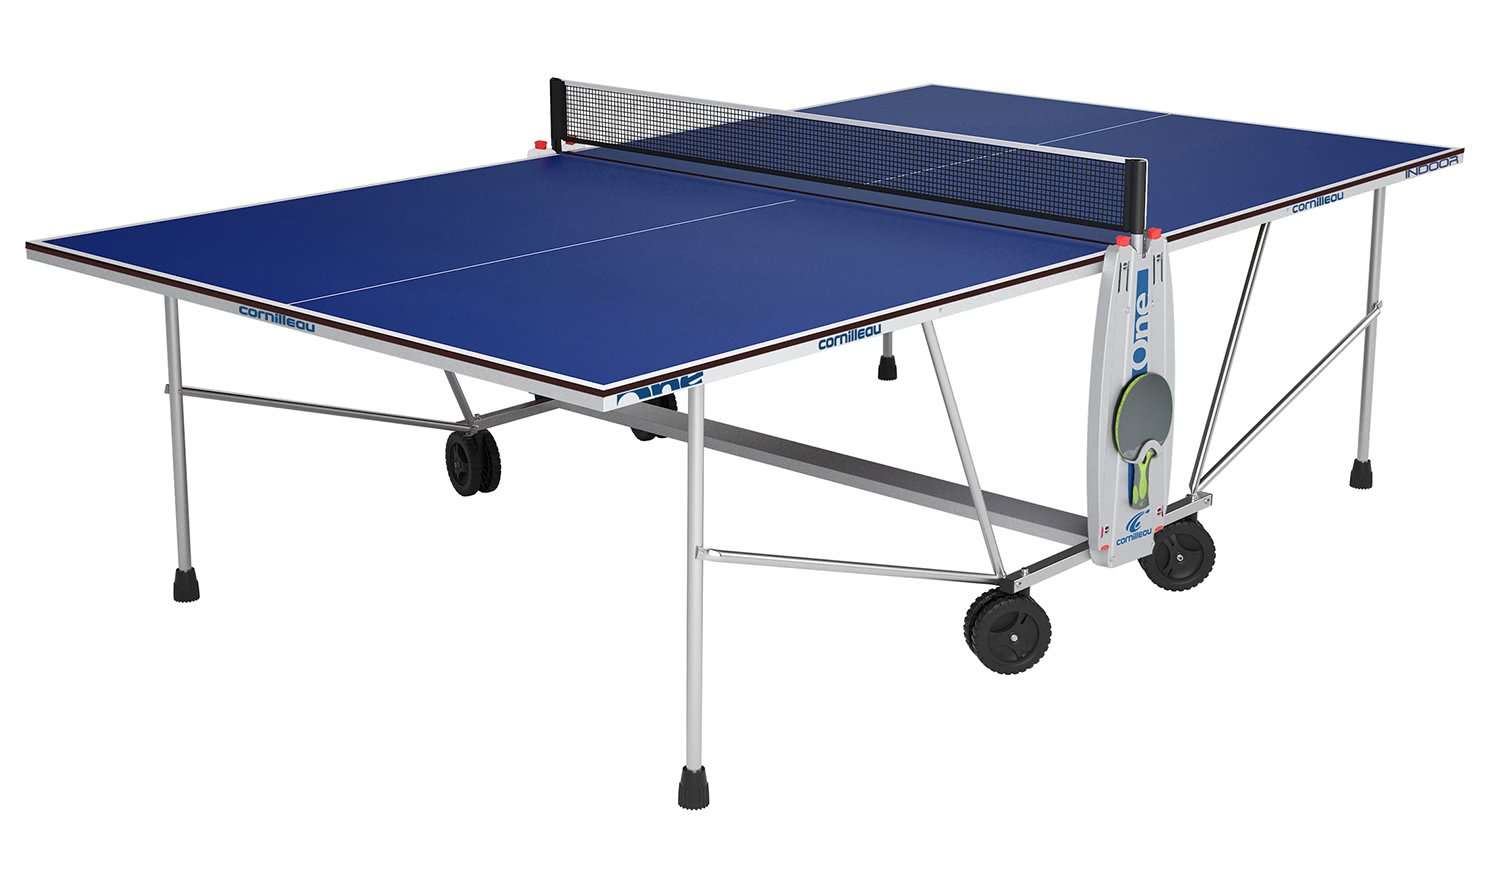 Cornilleau sport one rollaway indoor table tennis liberty games - Table ping pong cornilleau outdoor ...